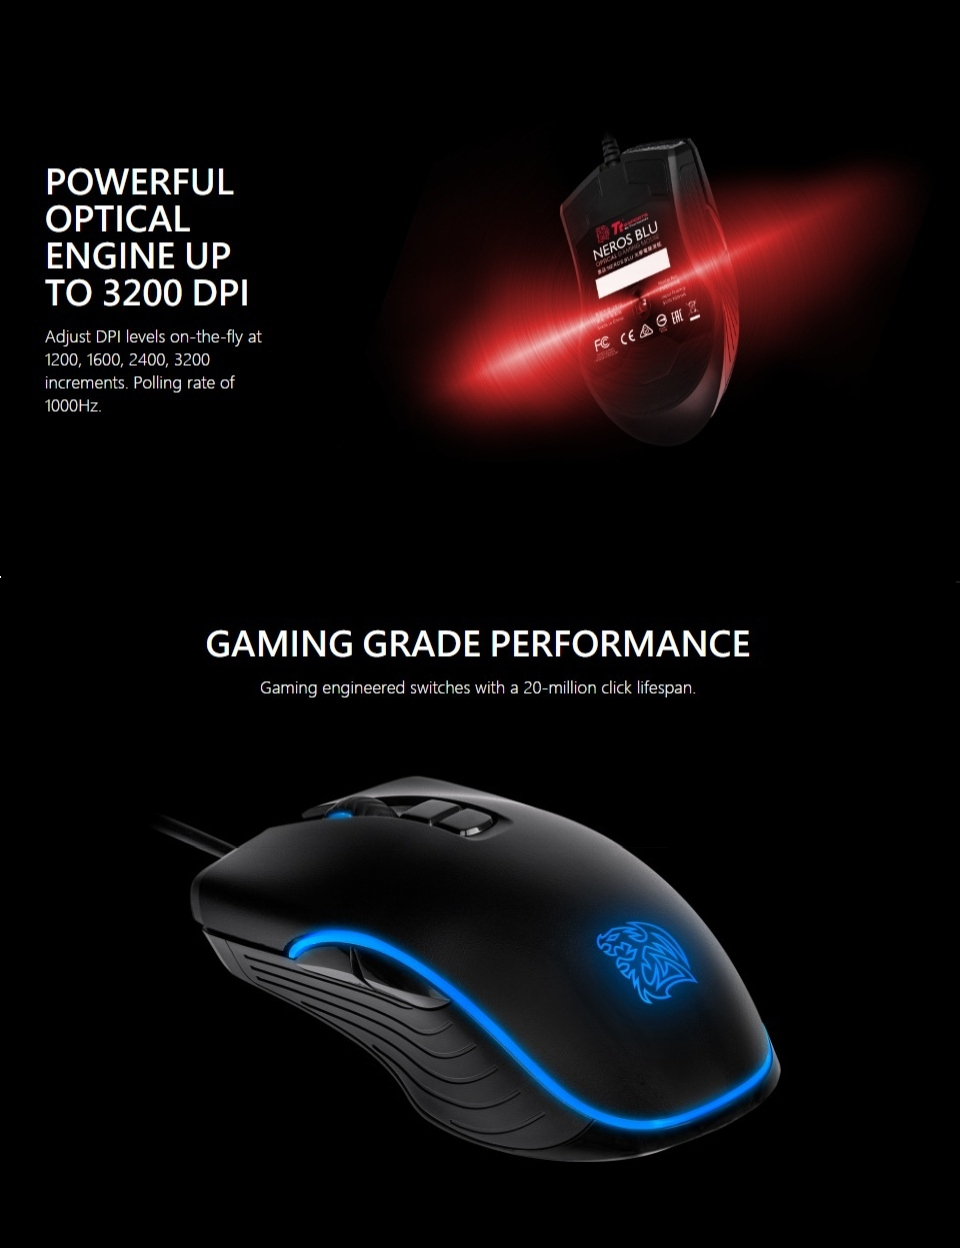 Tt eSPORTS Neros Blu Optical Gaming Mouse features 2